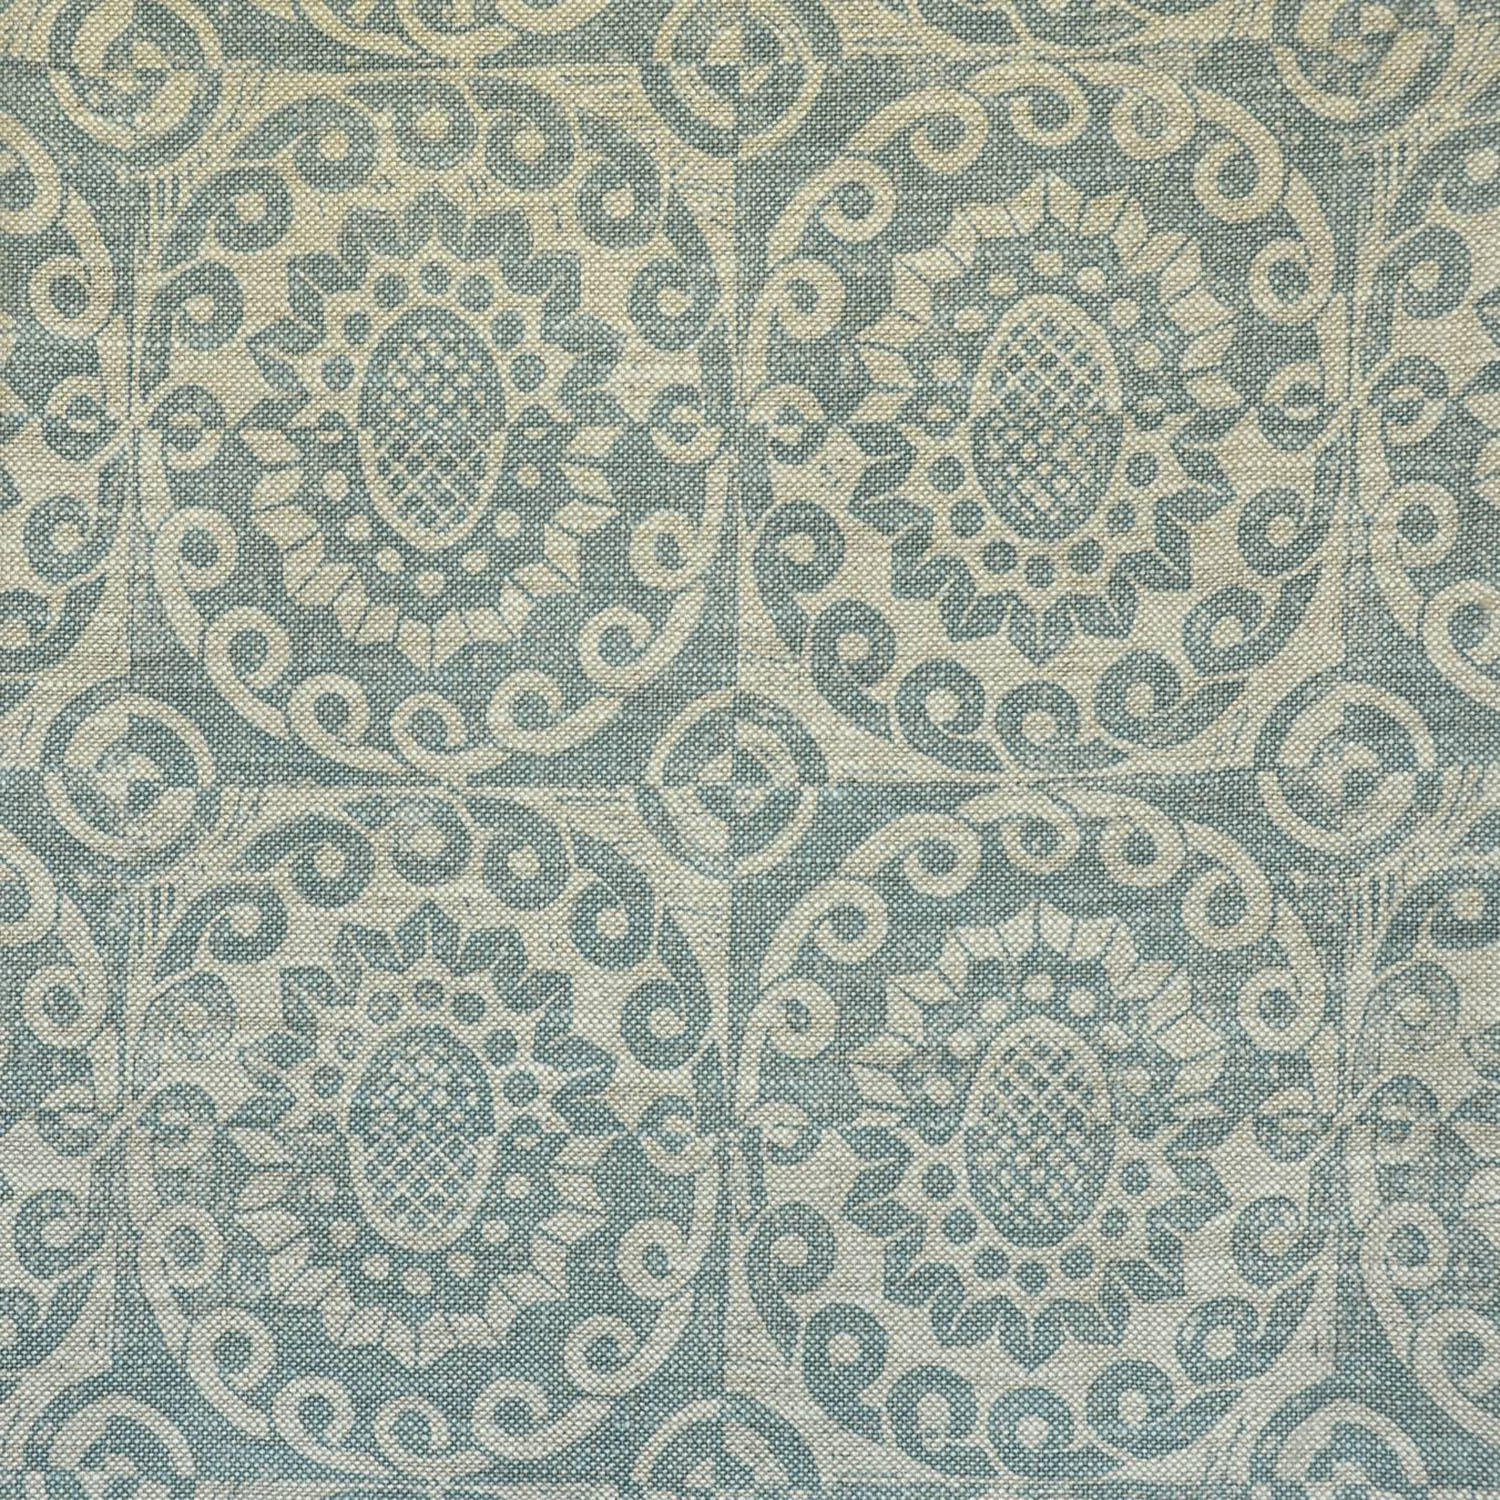 <p><strong>PINEAPPLE</strong>aqua/oatmeal 3300-02<a href=/the-peggy-angus-collection/pineapple-aqua-oatmeal-3300-02>More →</a></p>